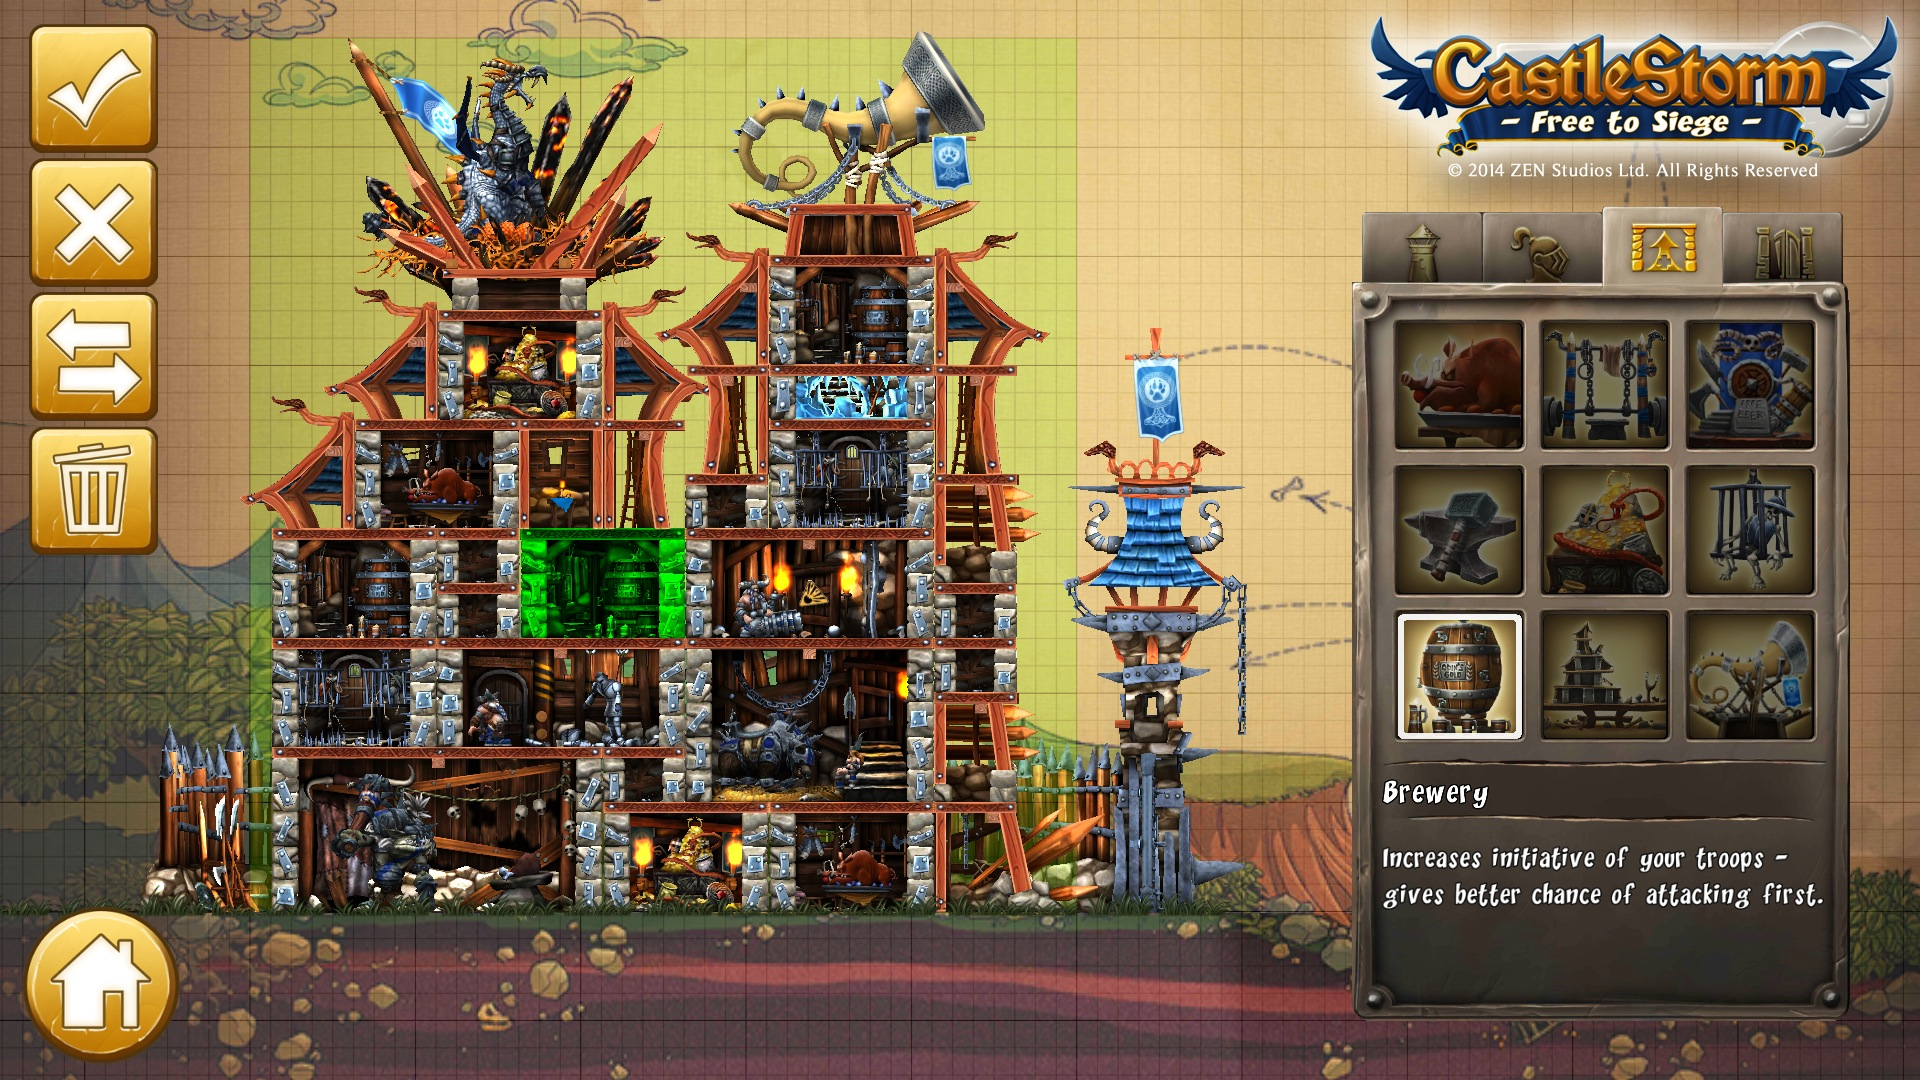 CastleStorm' from Zen Studios is Heading to Mobile as a New